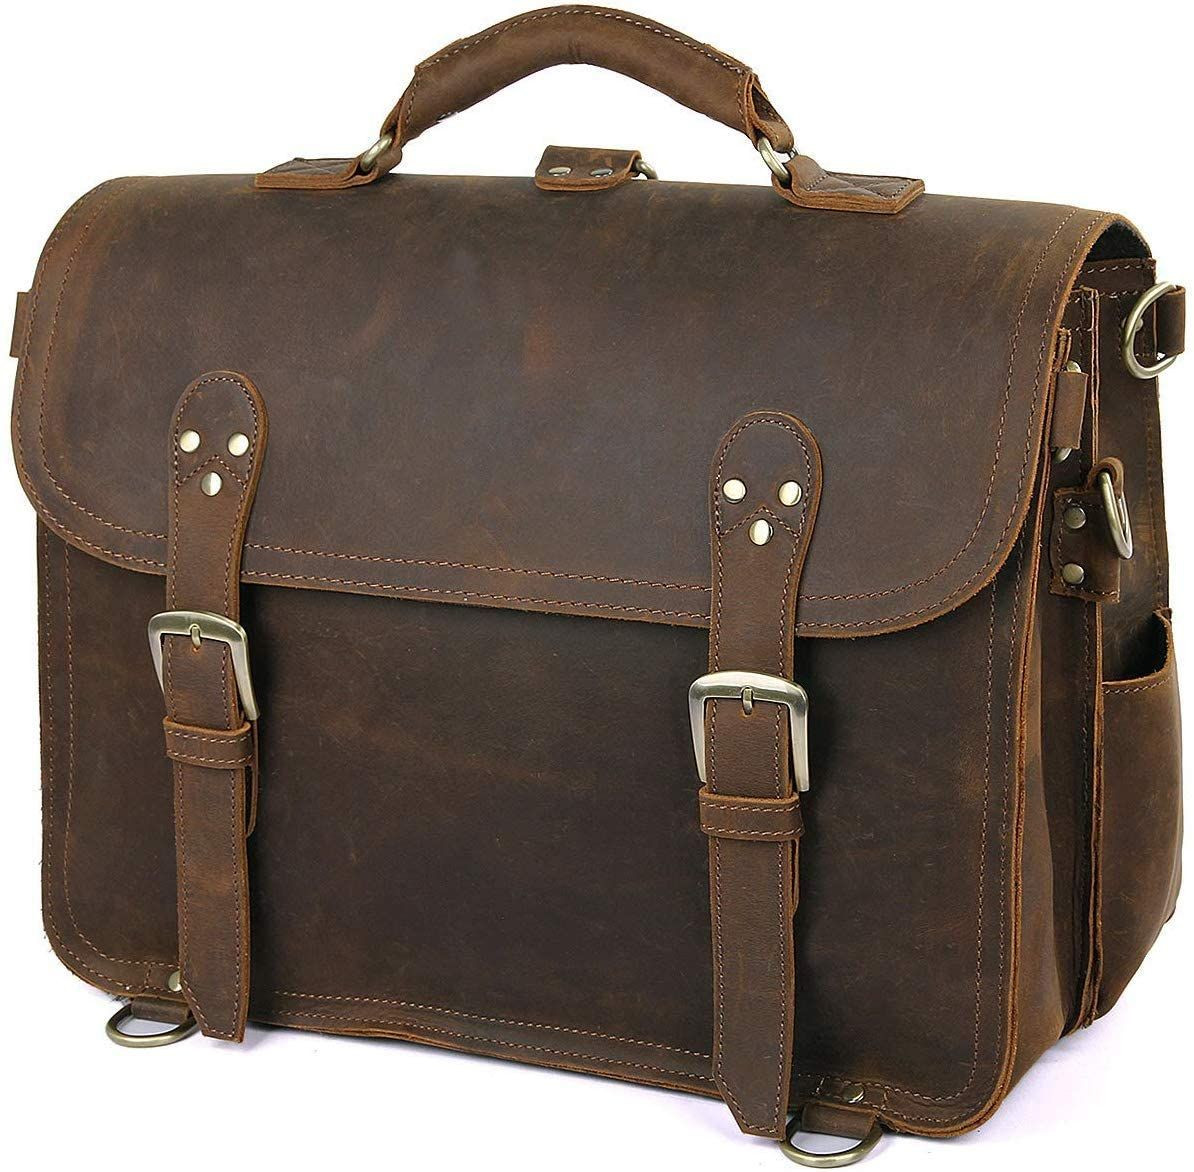 Leather Messenger Bag Casual Designer Travel Briefcase Business bag 16 inches (Brown)